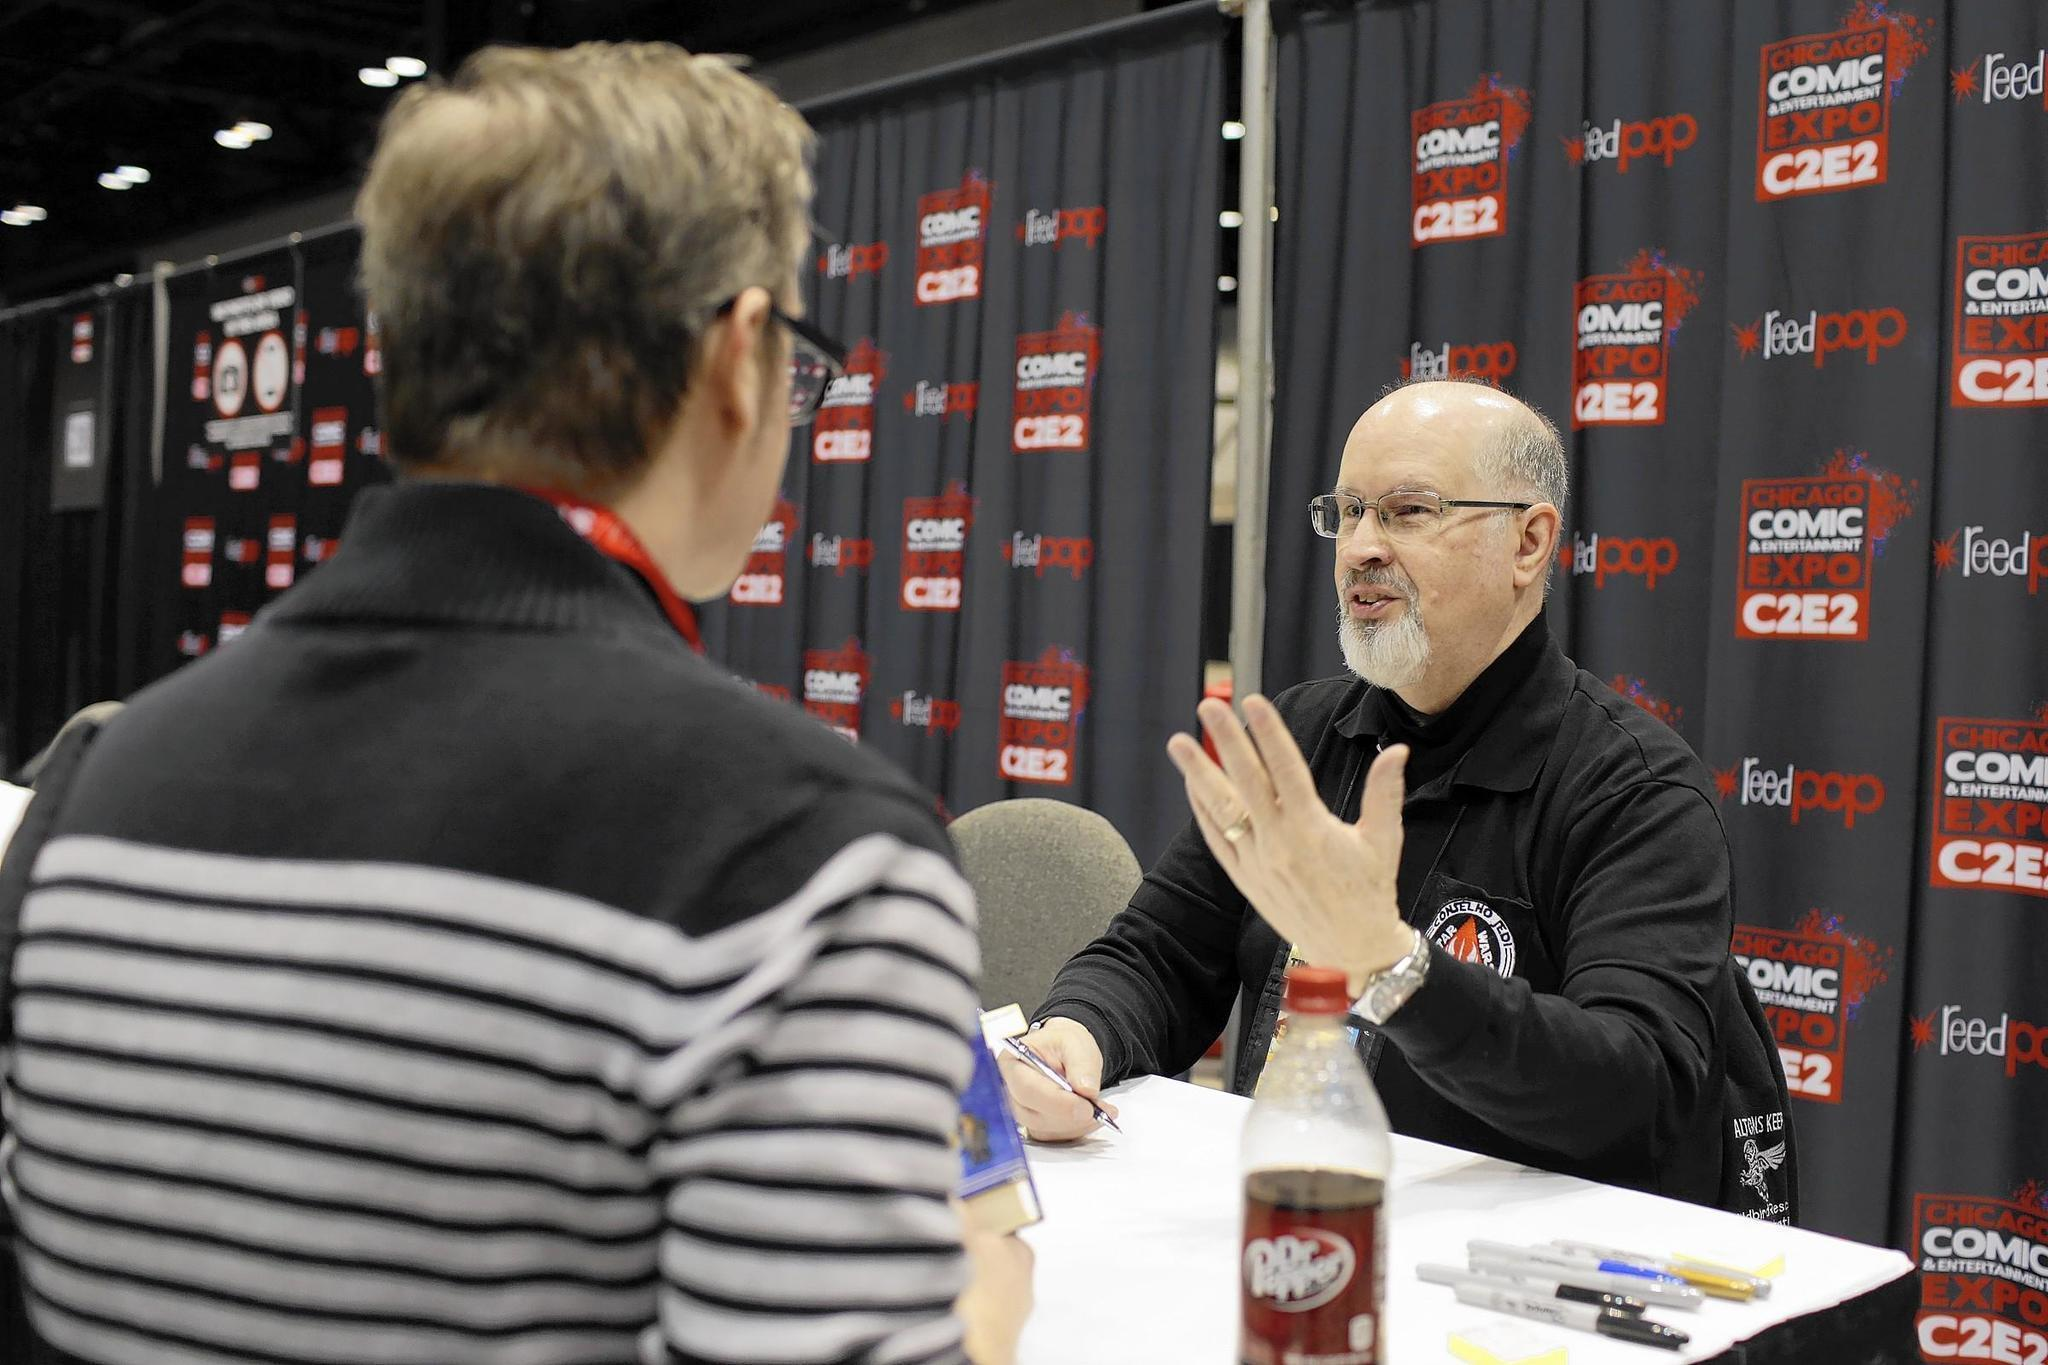 Novelist Timothy Zahn is the man who saved 'Star Wars,' according to fans